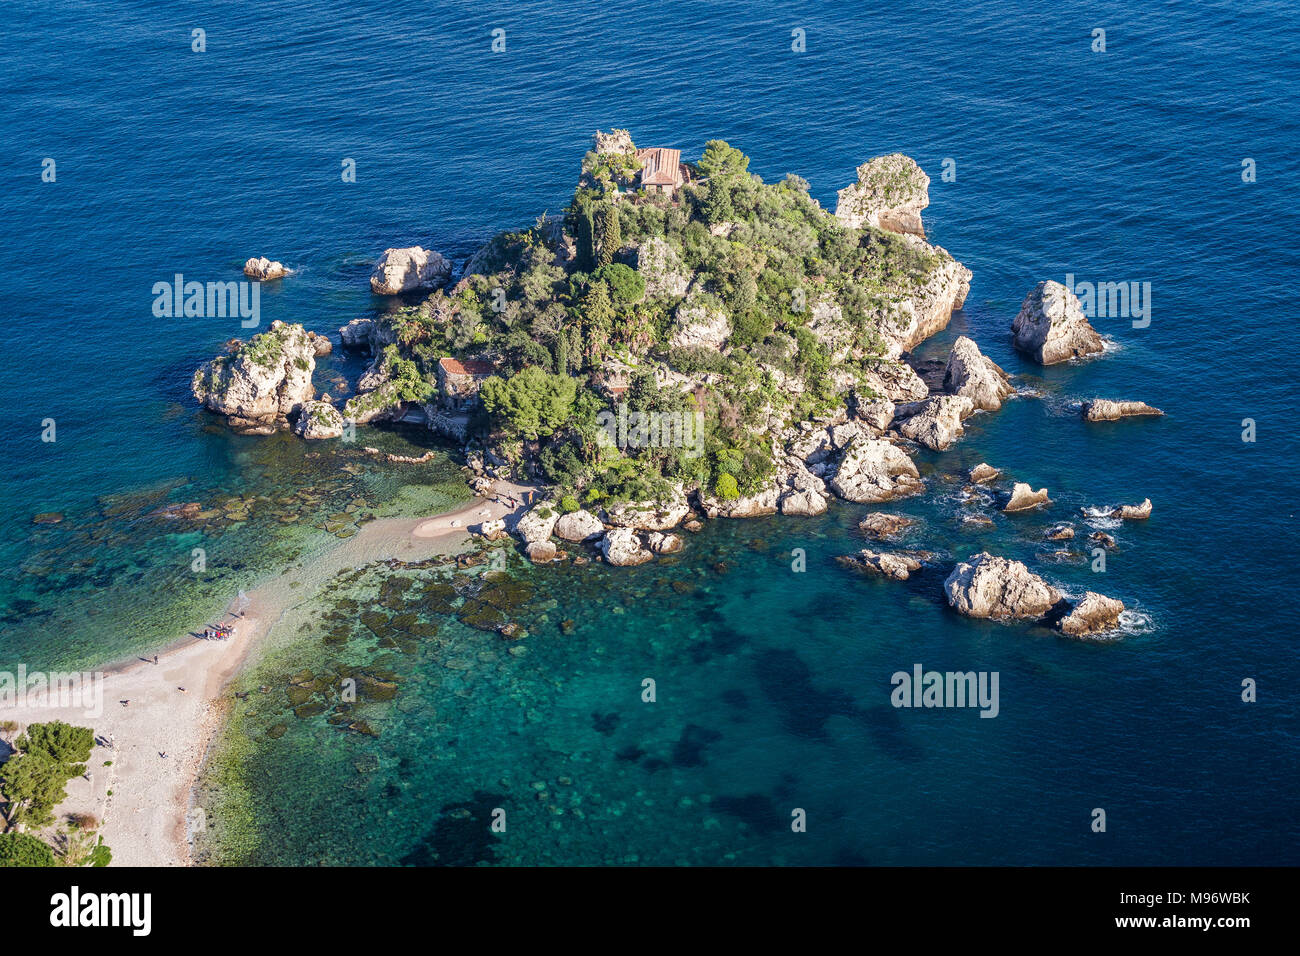 Isola Bella island in Taormina, Sicily. Sometimes the tide creates a small path with the mainland. - Stock Image